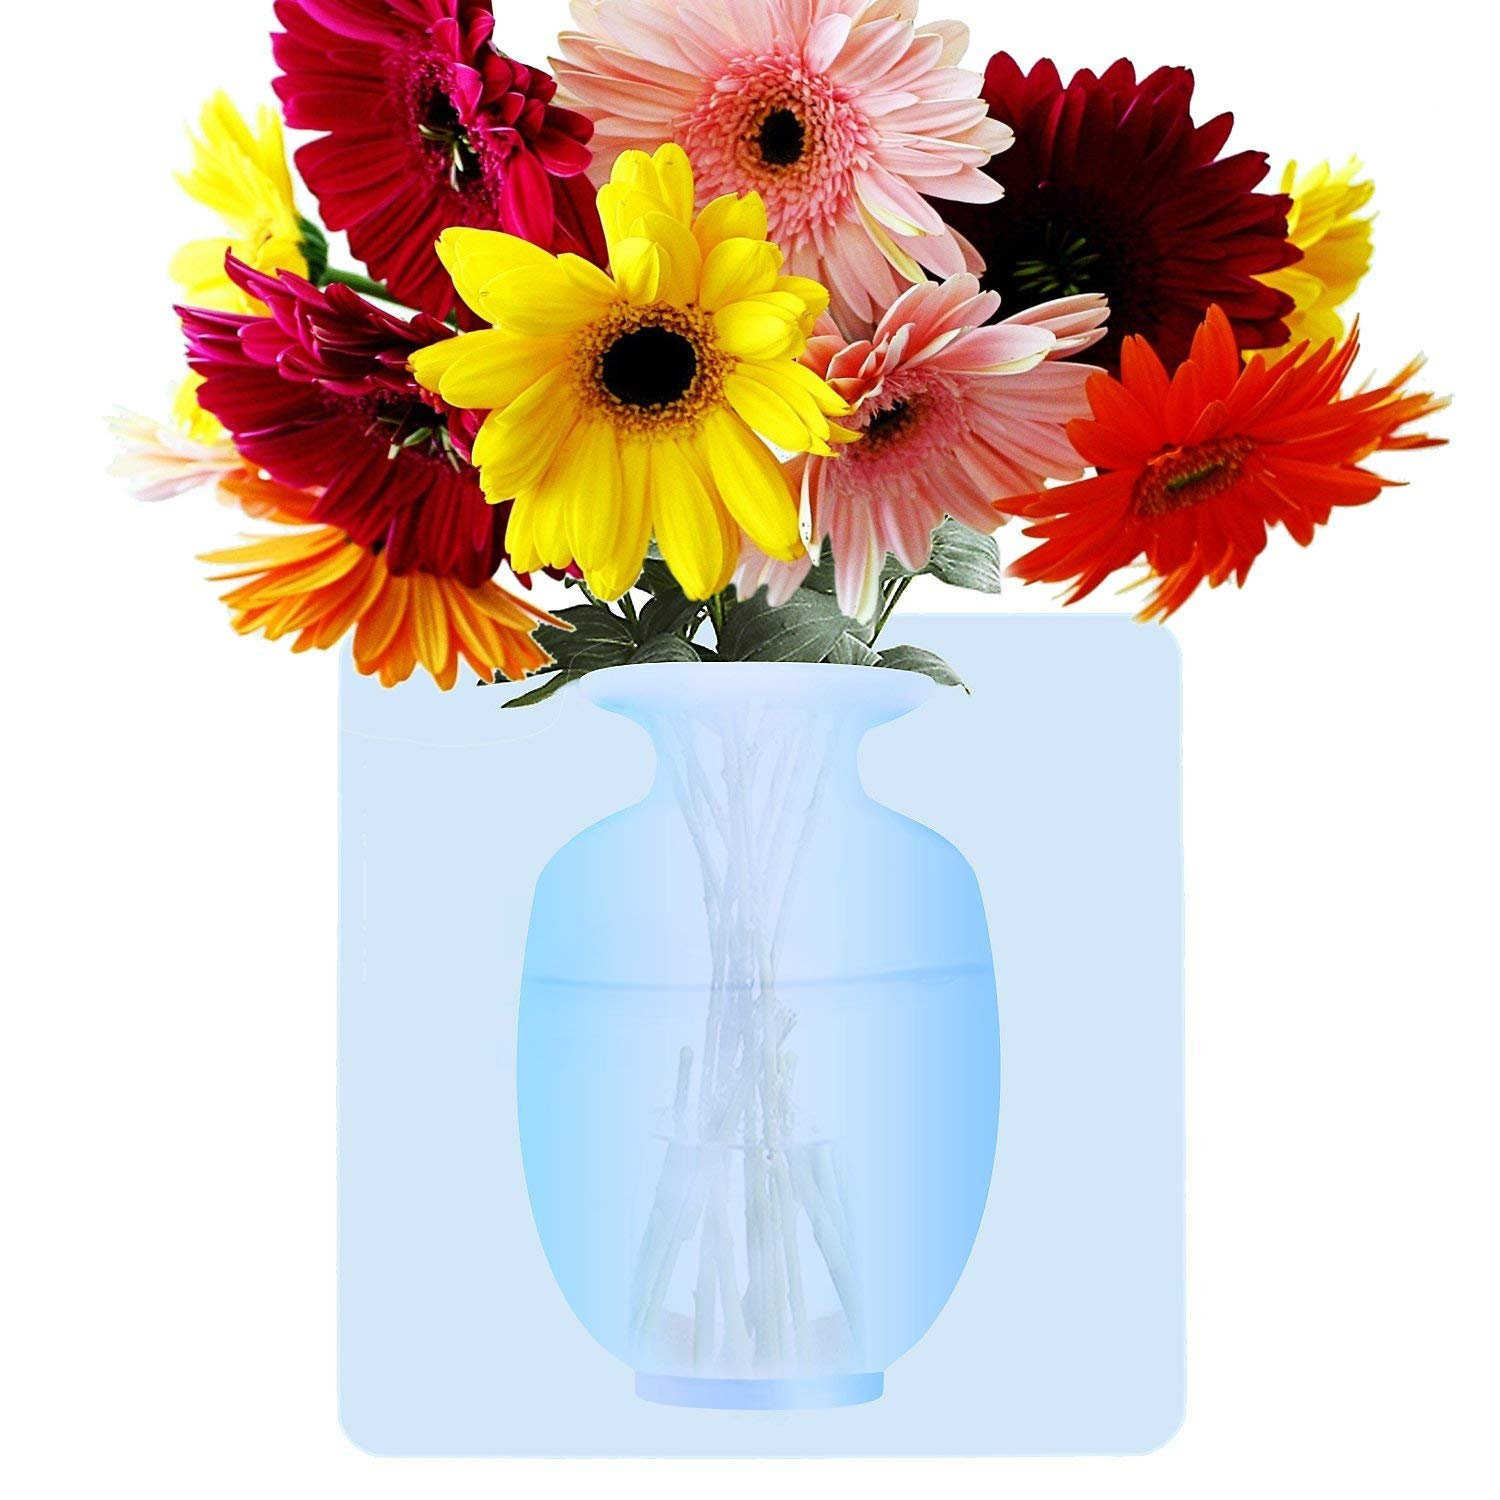 Cirsum Elastic Antigravity Sticky Vase Stick On The Wall Refrigirator Numasanltd Bathrooms Flower Container For Home And Offices Reusable Flower Pot